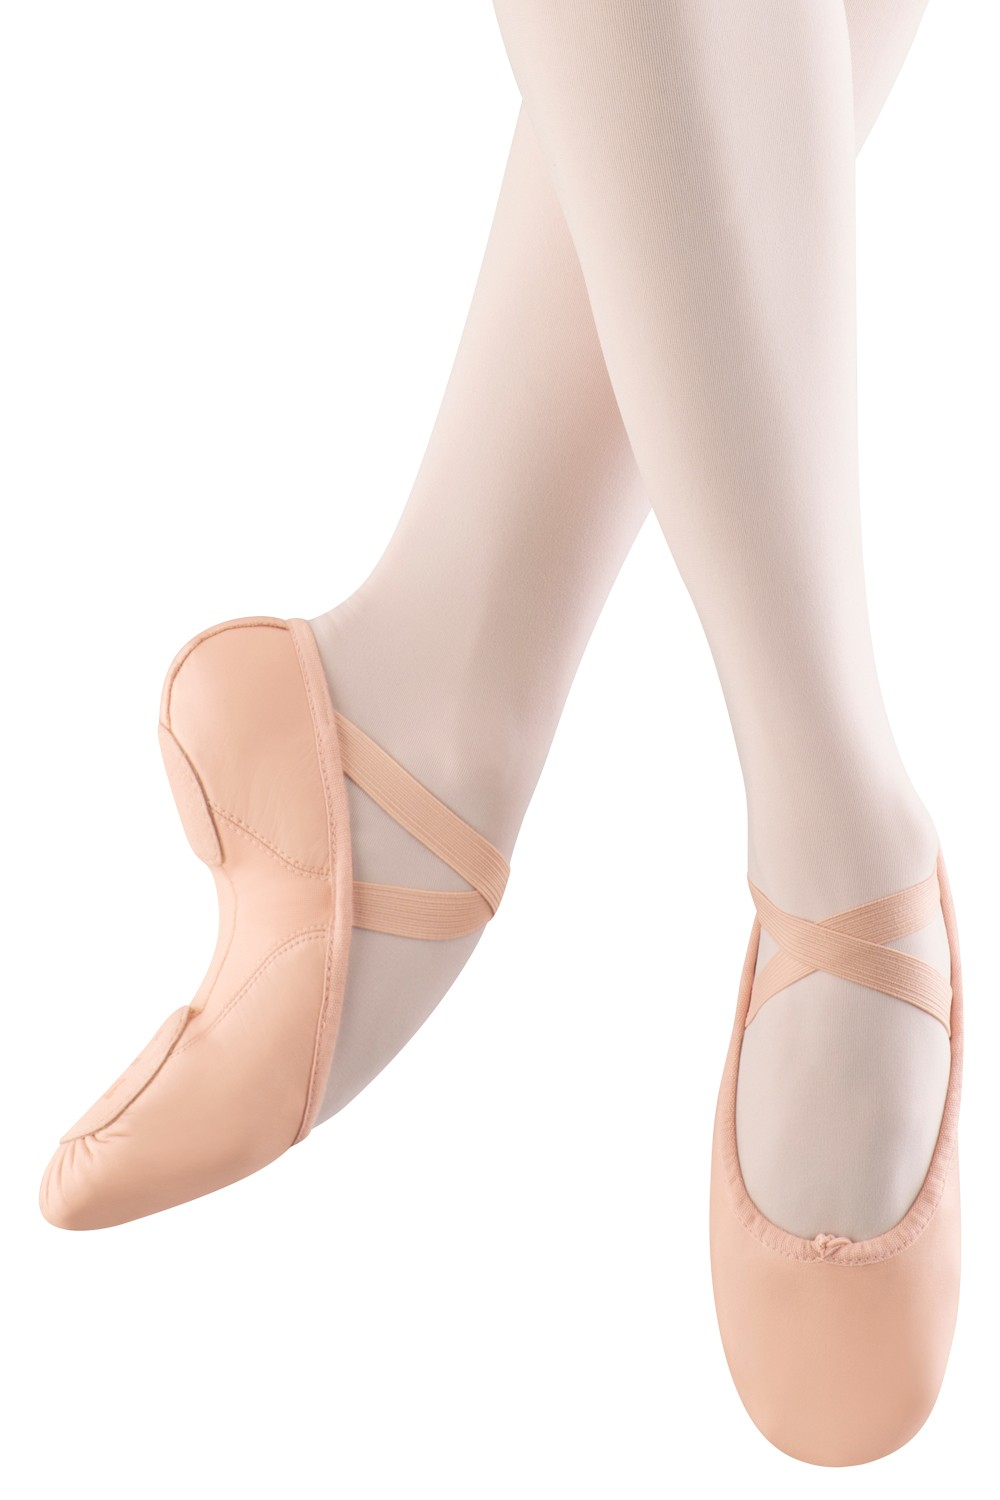 Proflex Piel Women's Ballet Shoes